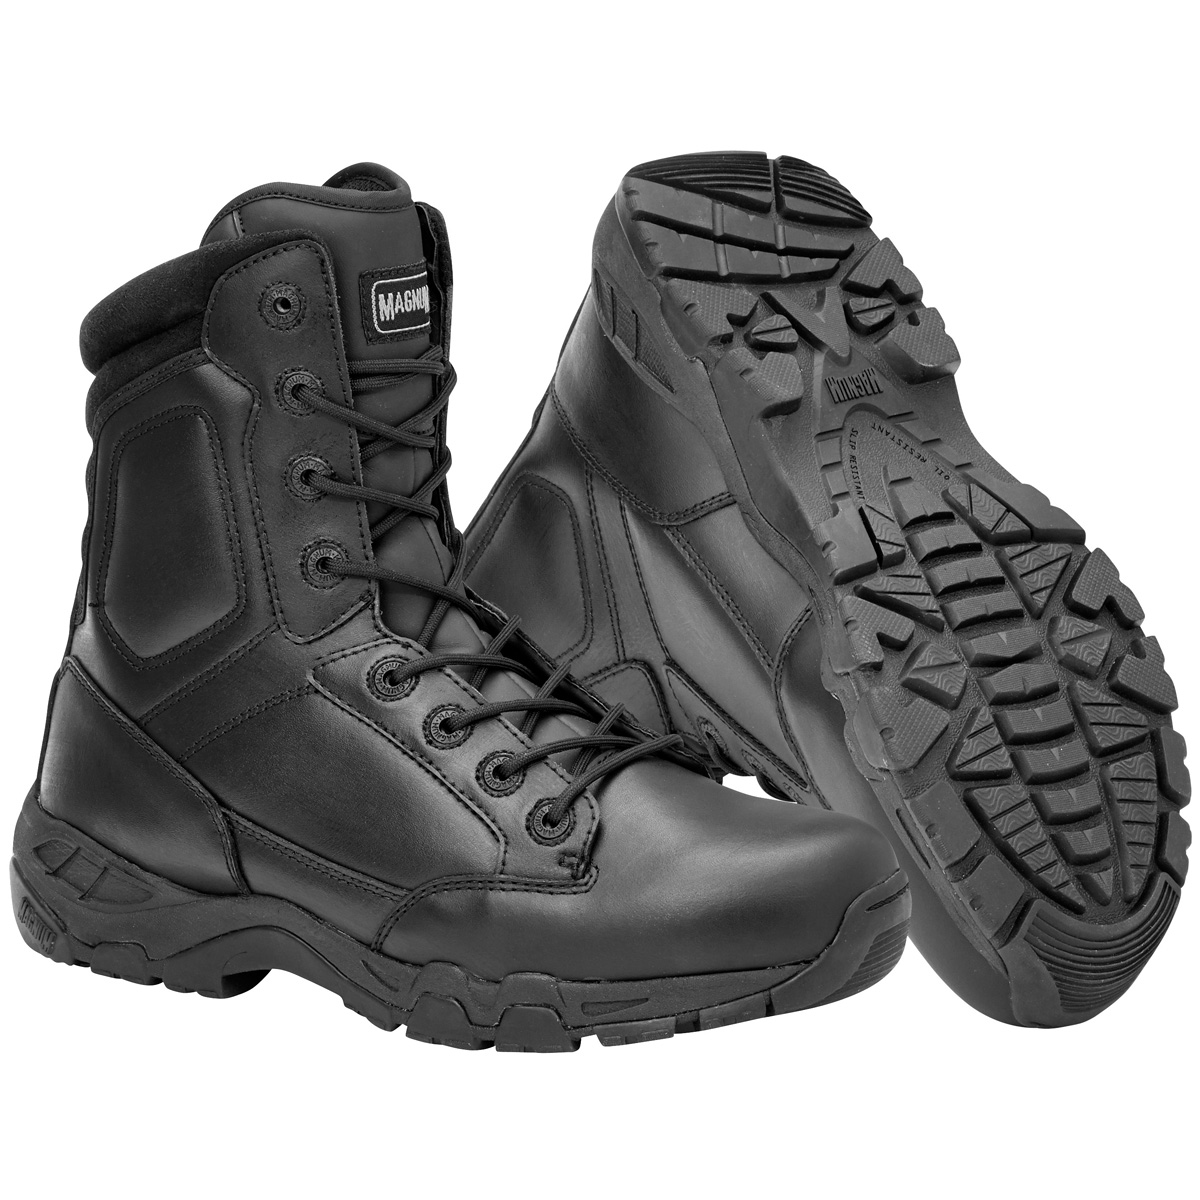 Magnum Viper Pro 8.0 Leather Waterproof Outdoor Boots C81s6570